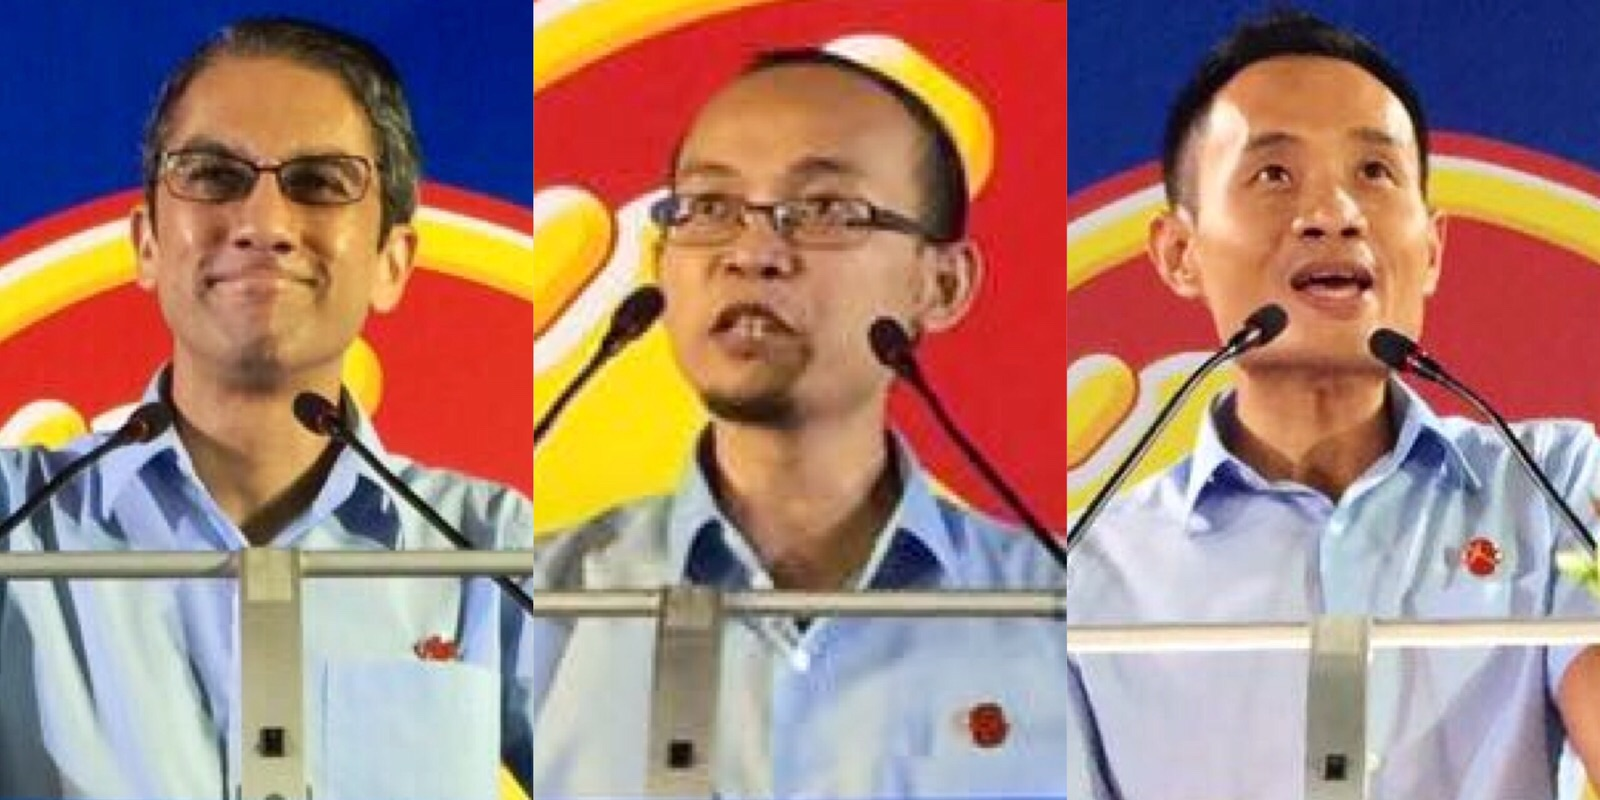 Three New Faces Join WP's Leadership